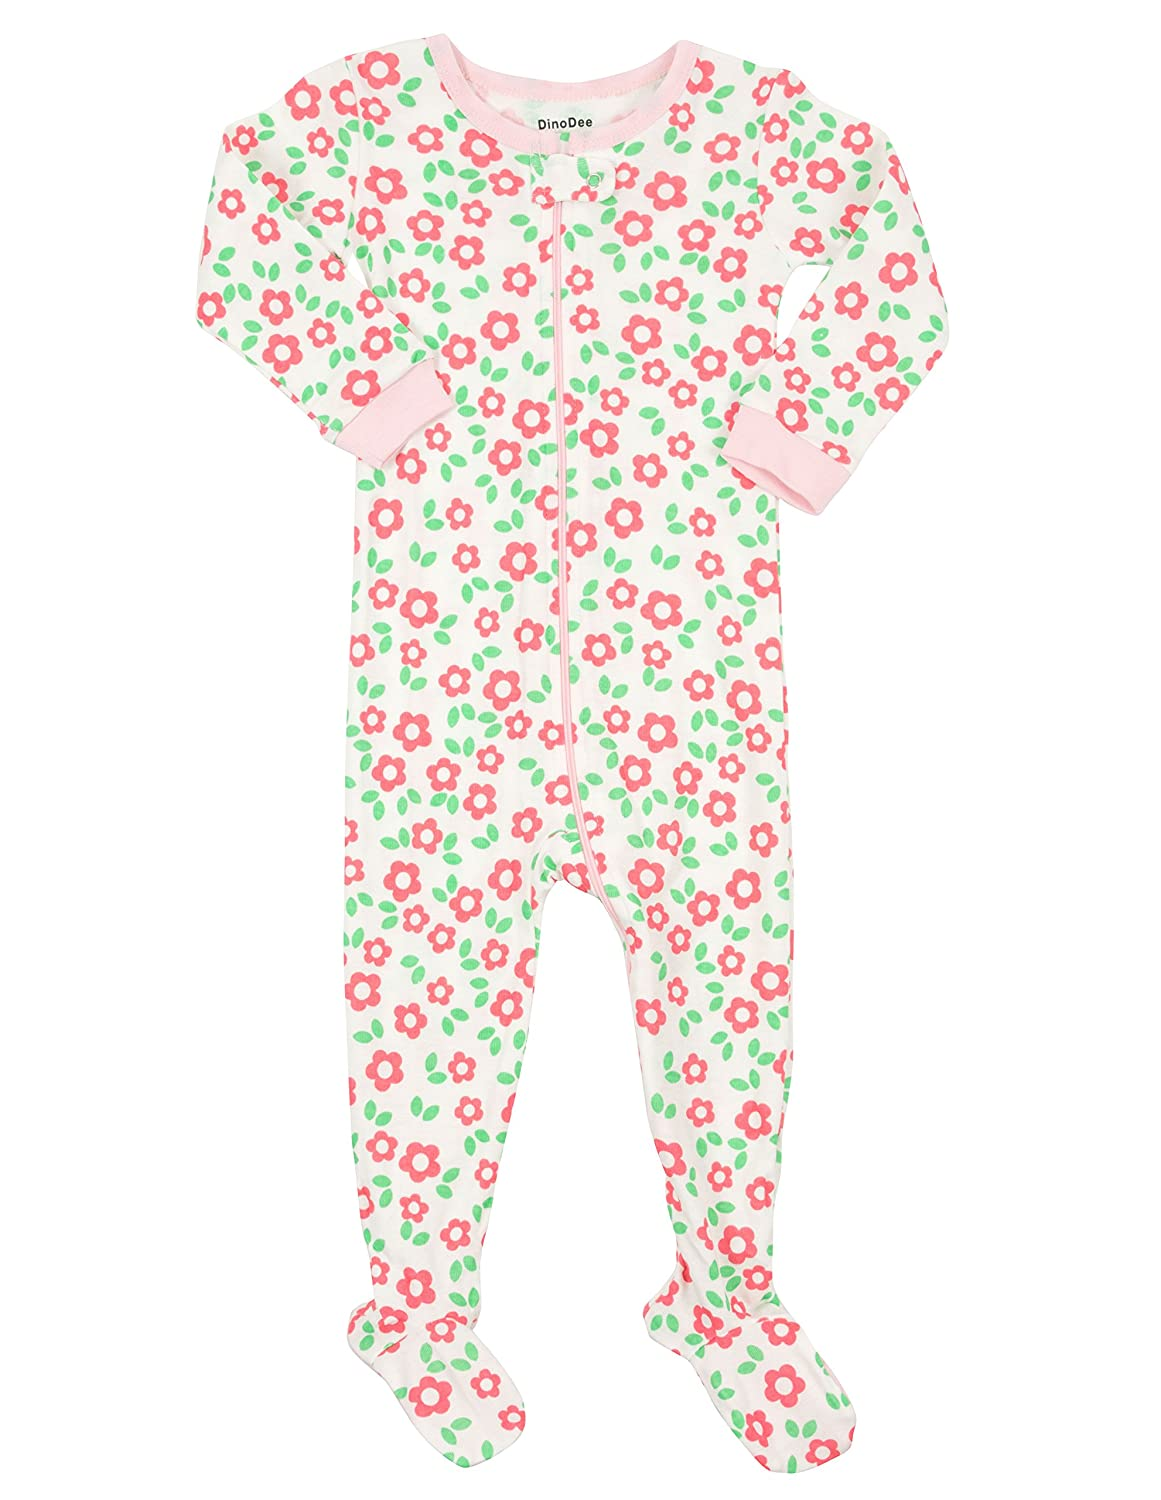 99b9a88bcd1d Amazon.com  DinoDee Baby Girls Footed Pajamas Sleeper 100% Cotton ...